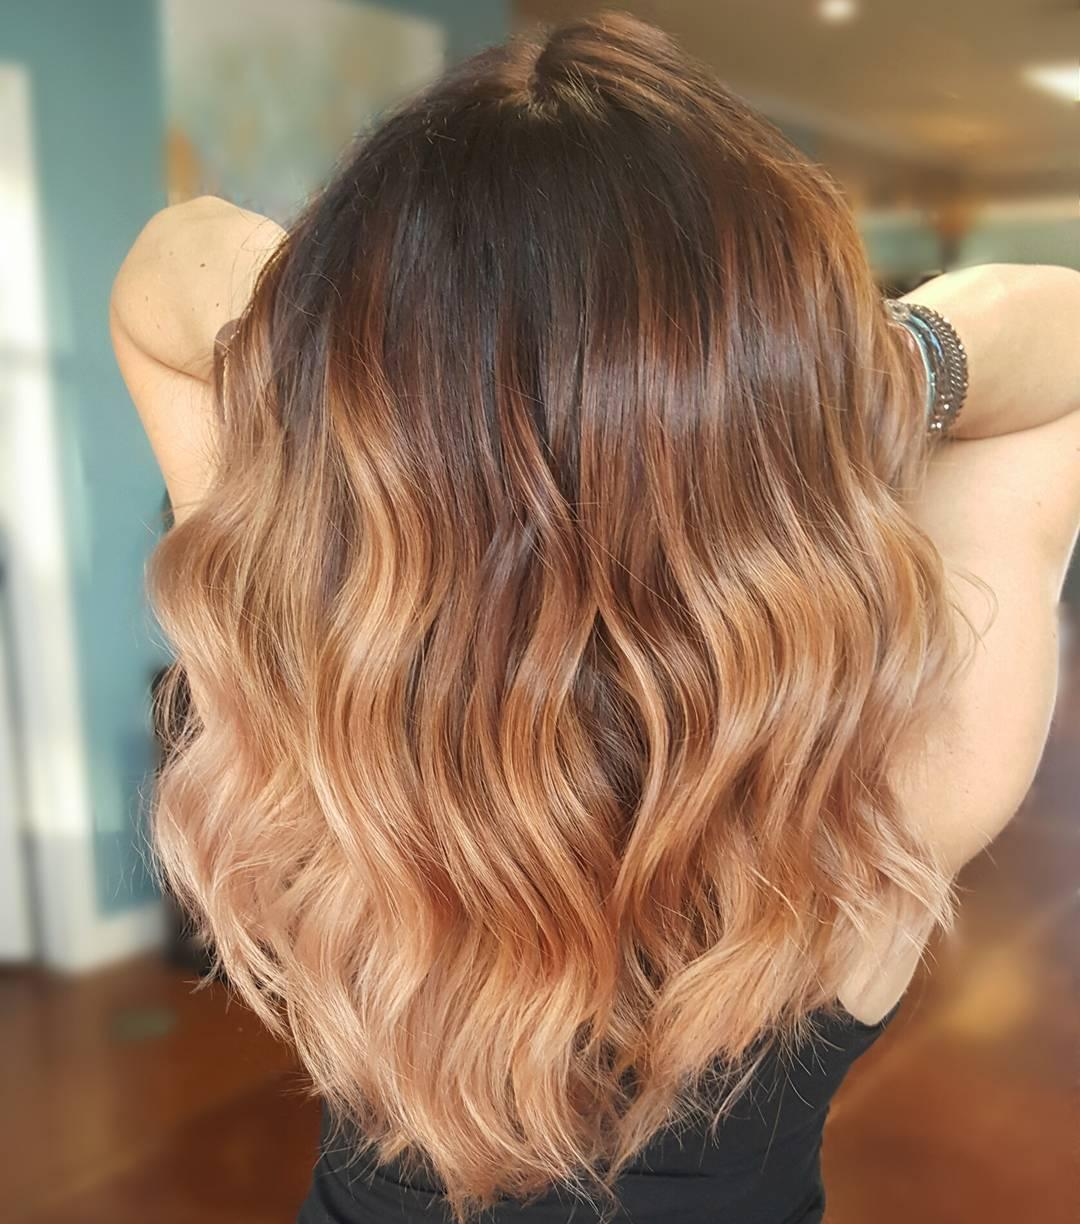 Woman with dark roots and caramel blonde hair styled with loose waves